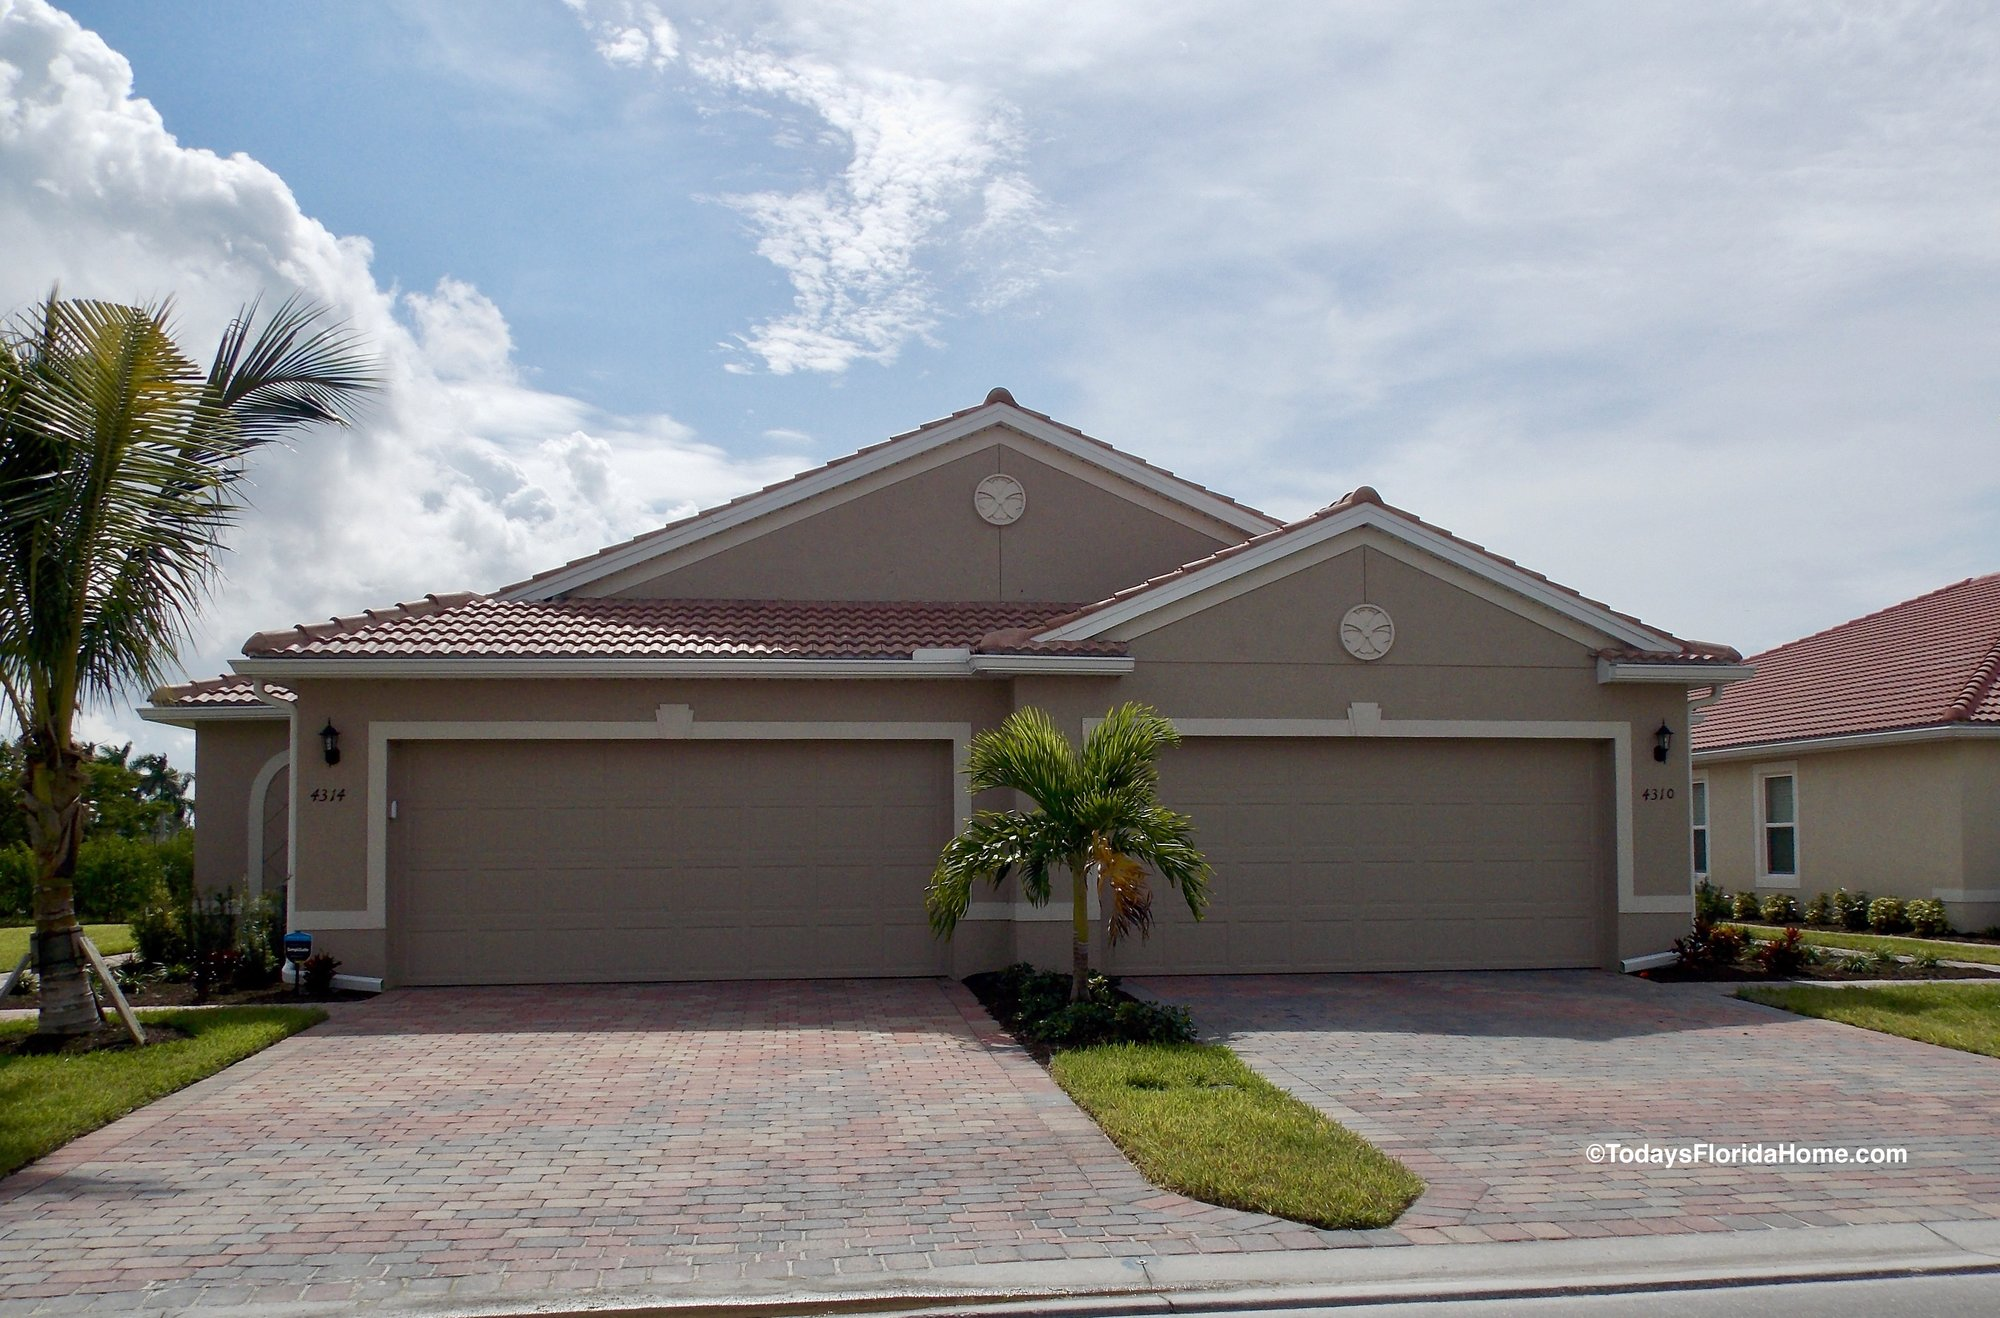 Lindsford Homes Fort Myers Florida, New Homes Southwest Florida, Fort Myers New Homes for Sale